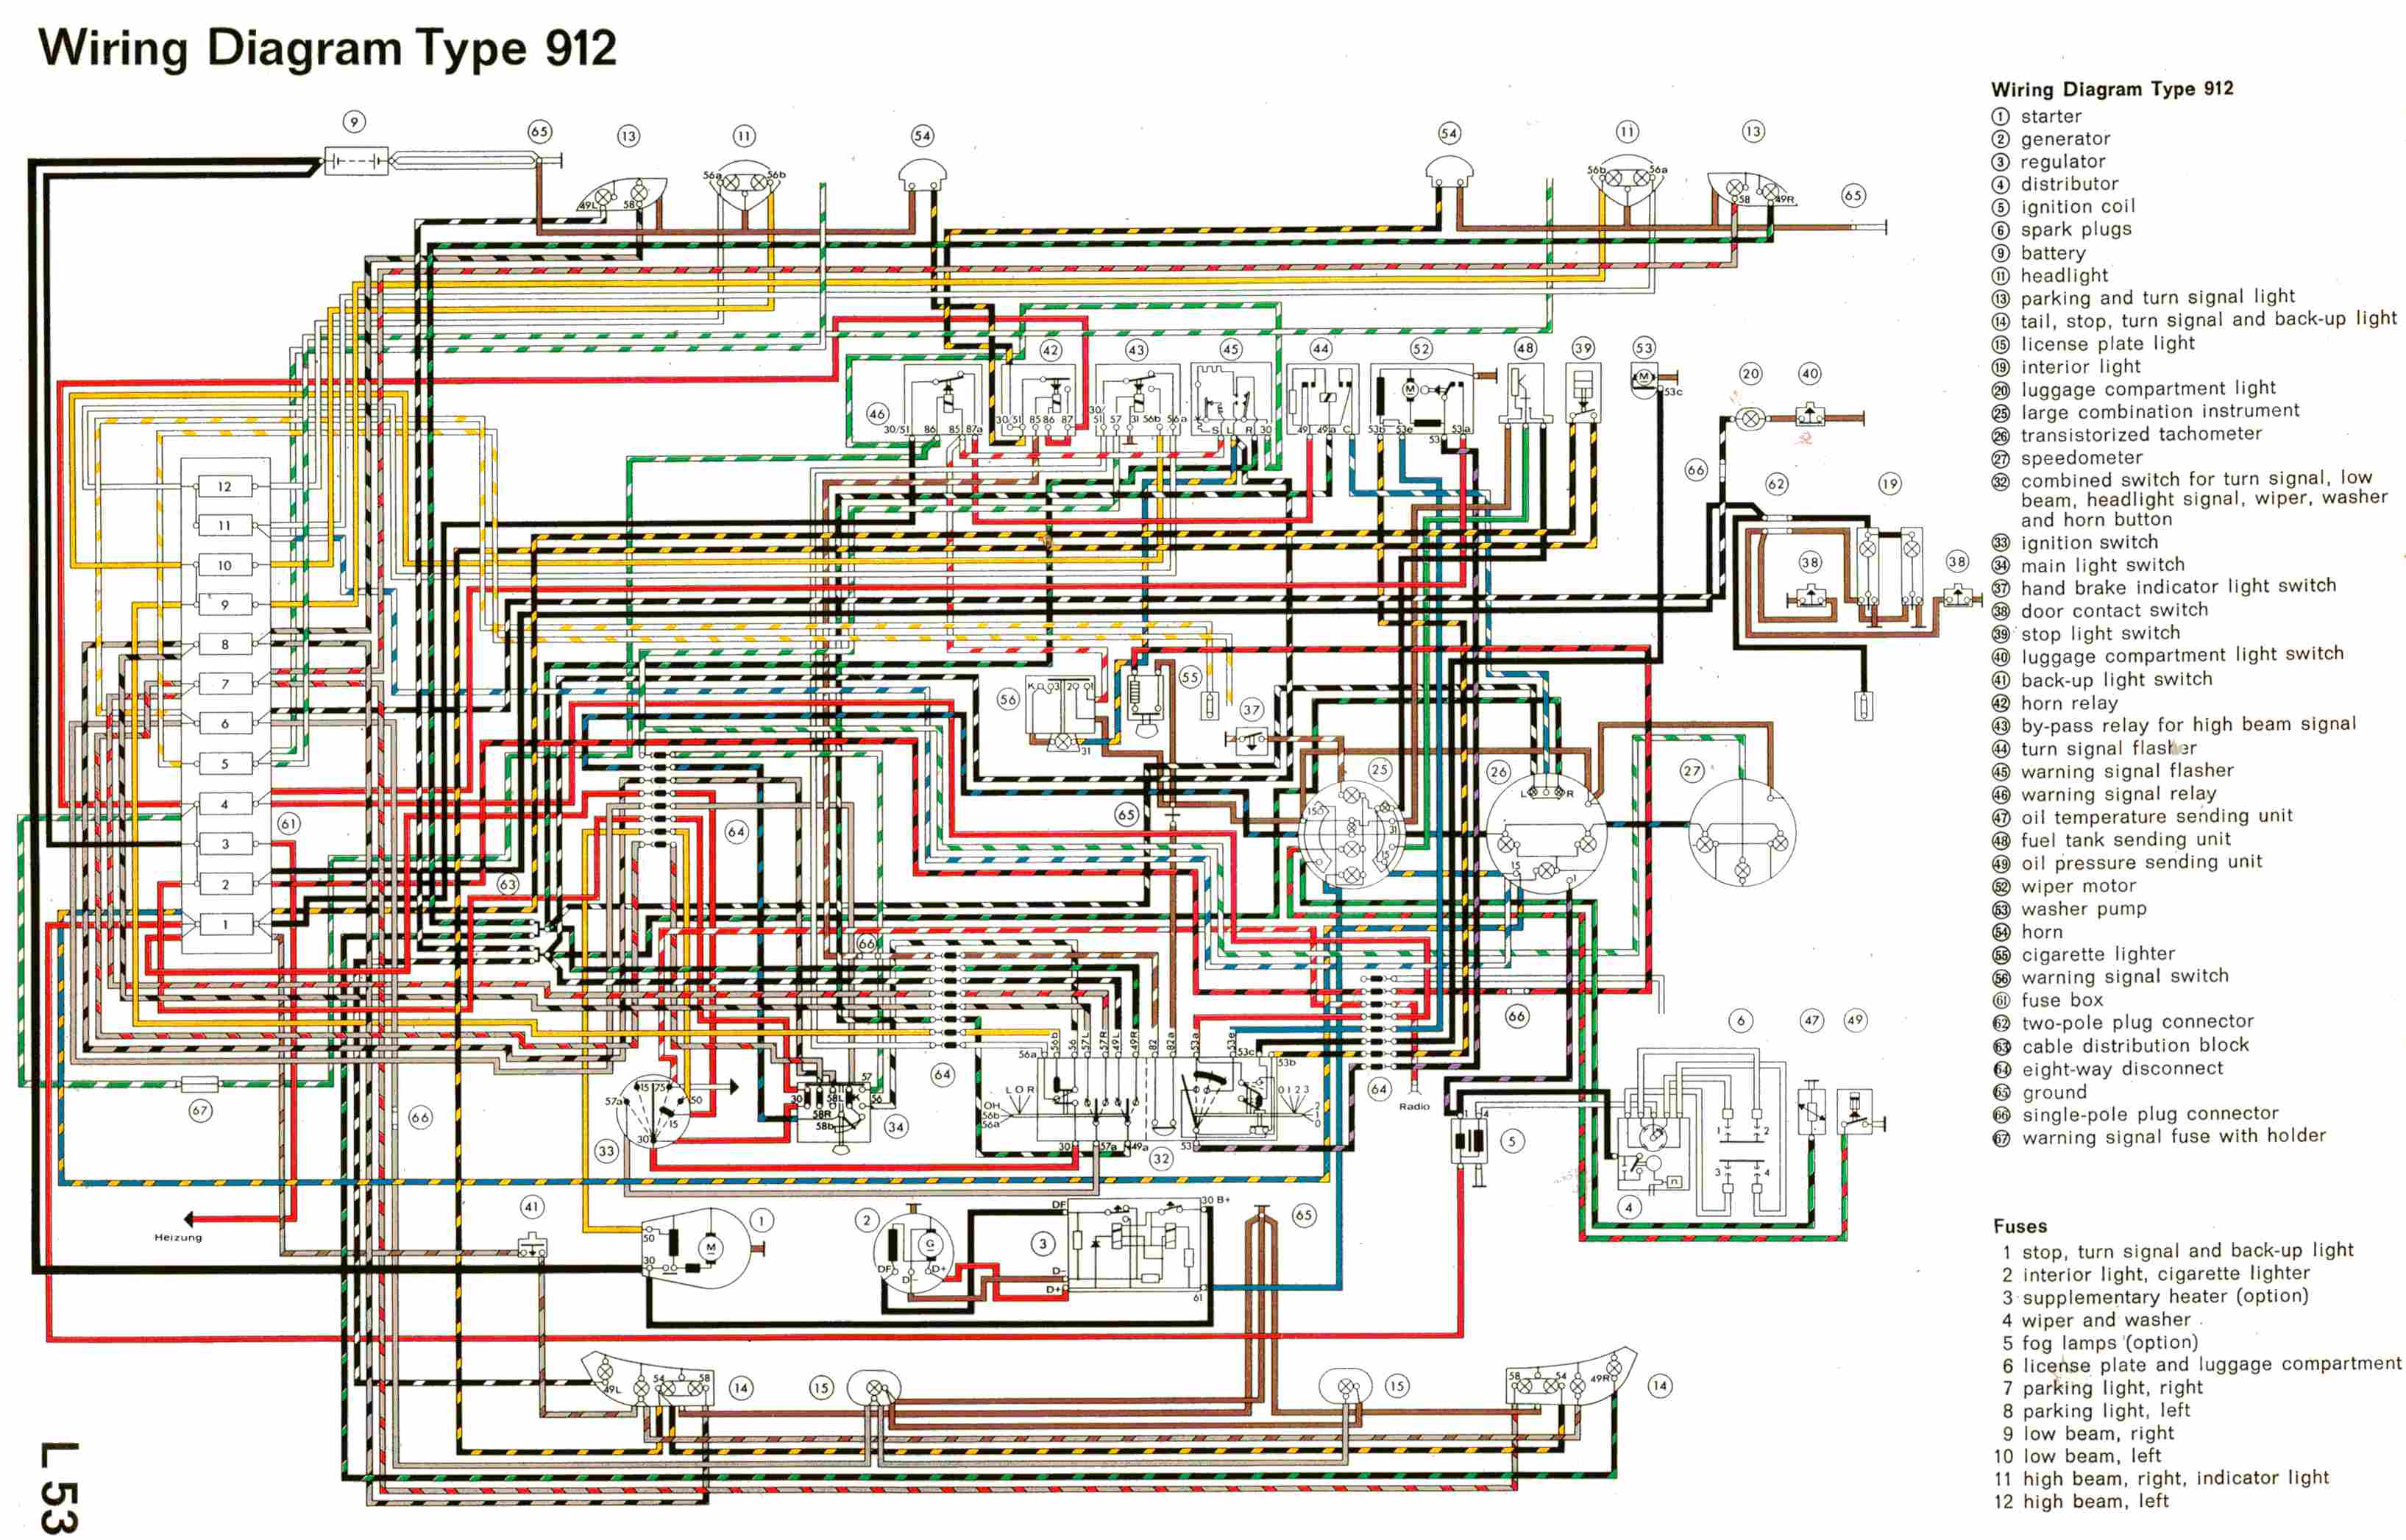 complete electrical wiring diagram of porsche type 912?resized665%2C4266ssld1 1981 porsche 928 wiring diagram efcaviation com 1980 porsche 928 wiring diagram at highcare.asia